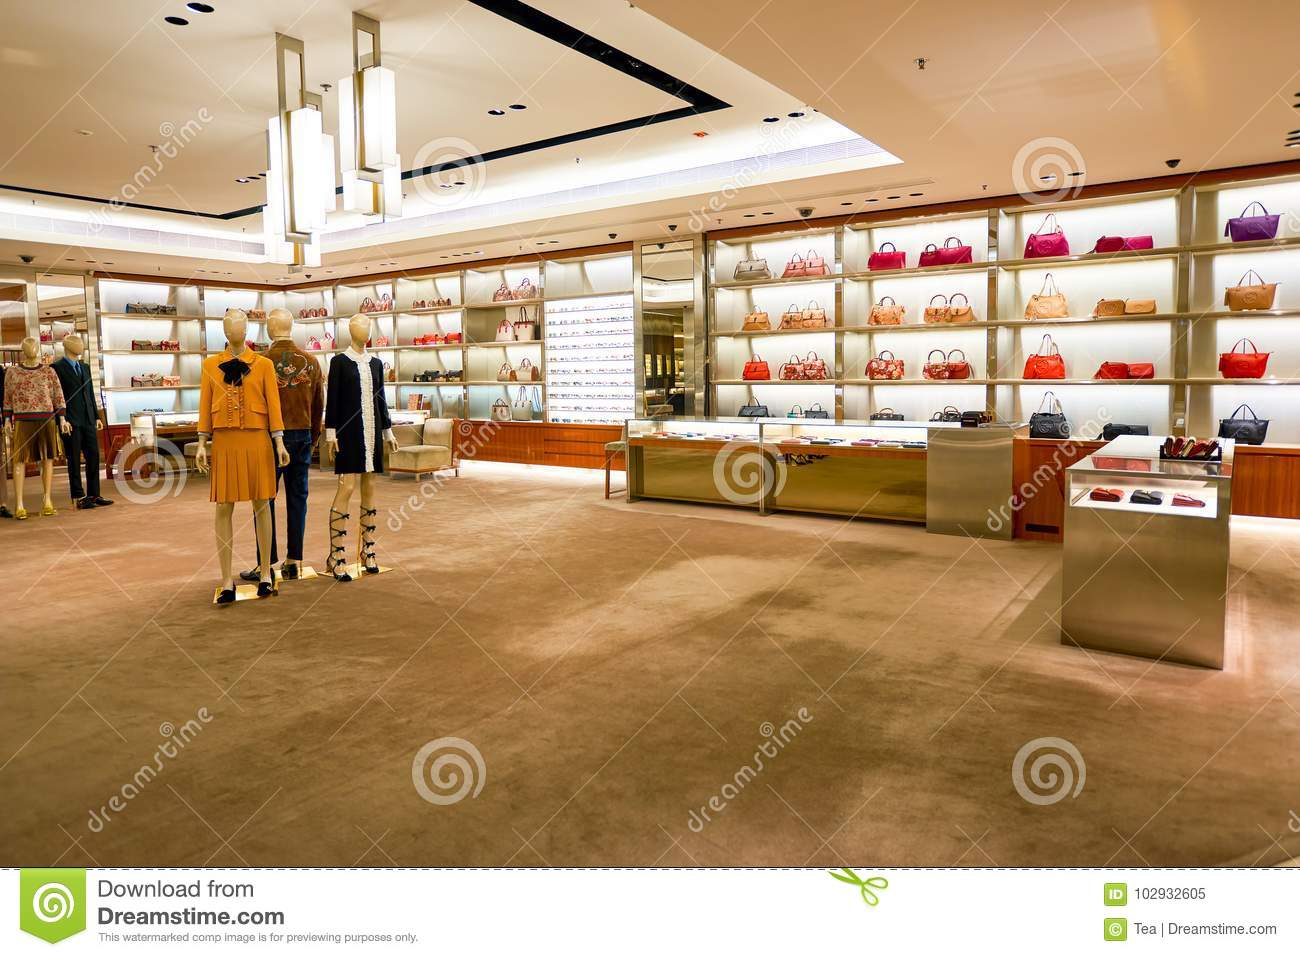 225426c2f86 Elements Shopping Mall editorial image. Image of department - 102932605